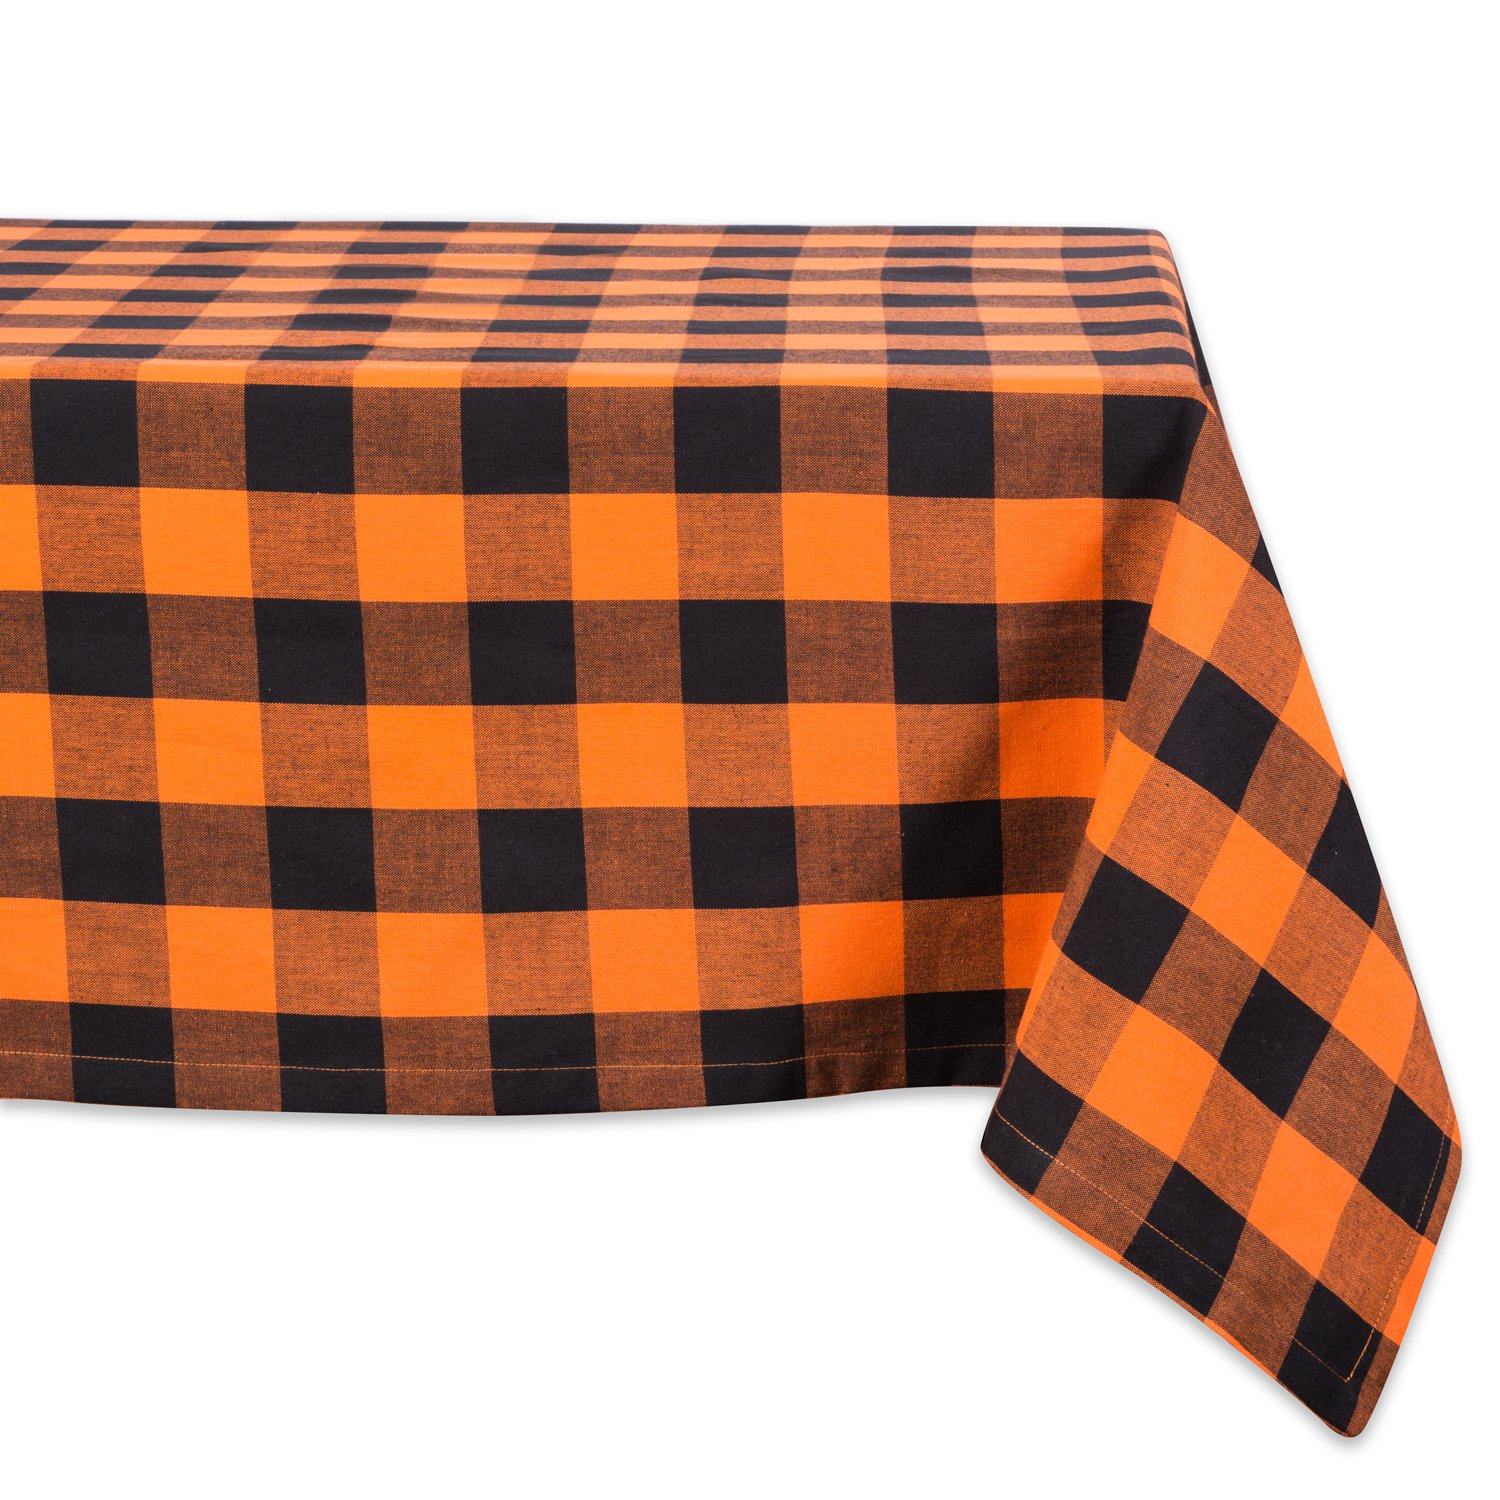 DII Cotton Buffalo Check Plaid Rectangle Tablecloth for Family Dinners or Gatherings, Indoor or Outdoor Parties, & Everyday Use (60x120'',  Seats 10-12 People), Orange & Black by DII